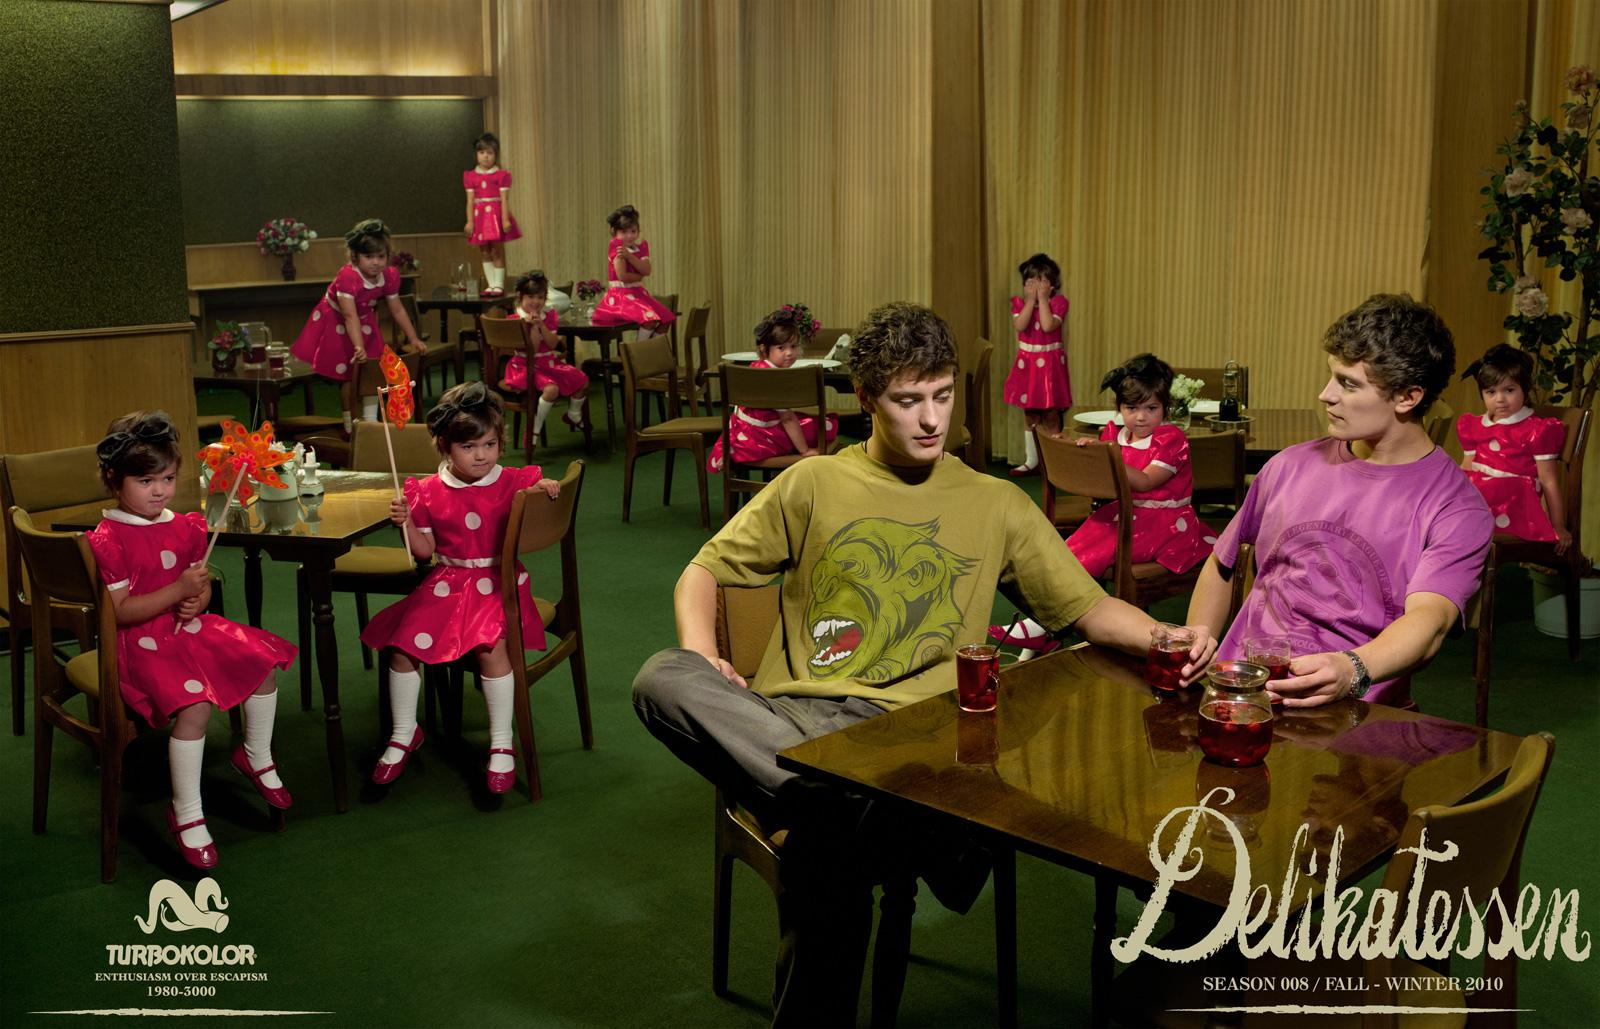 Turbokolor Print Ad -  Delikatessen, Twins and girls